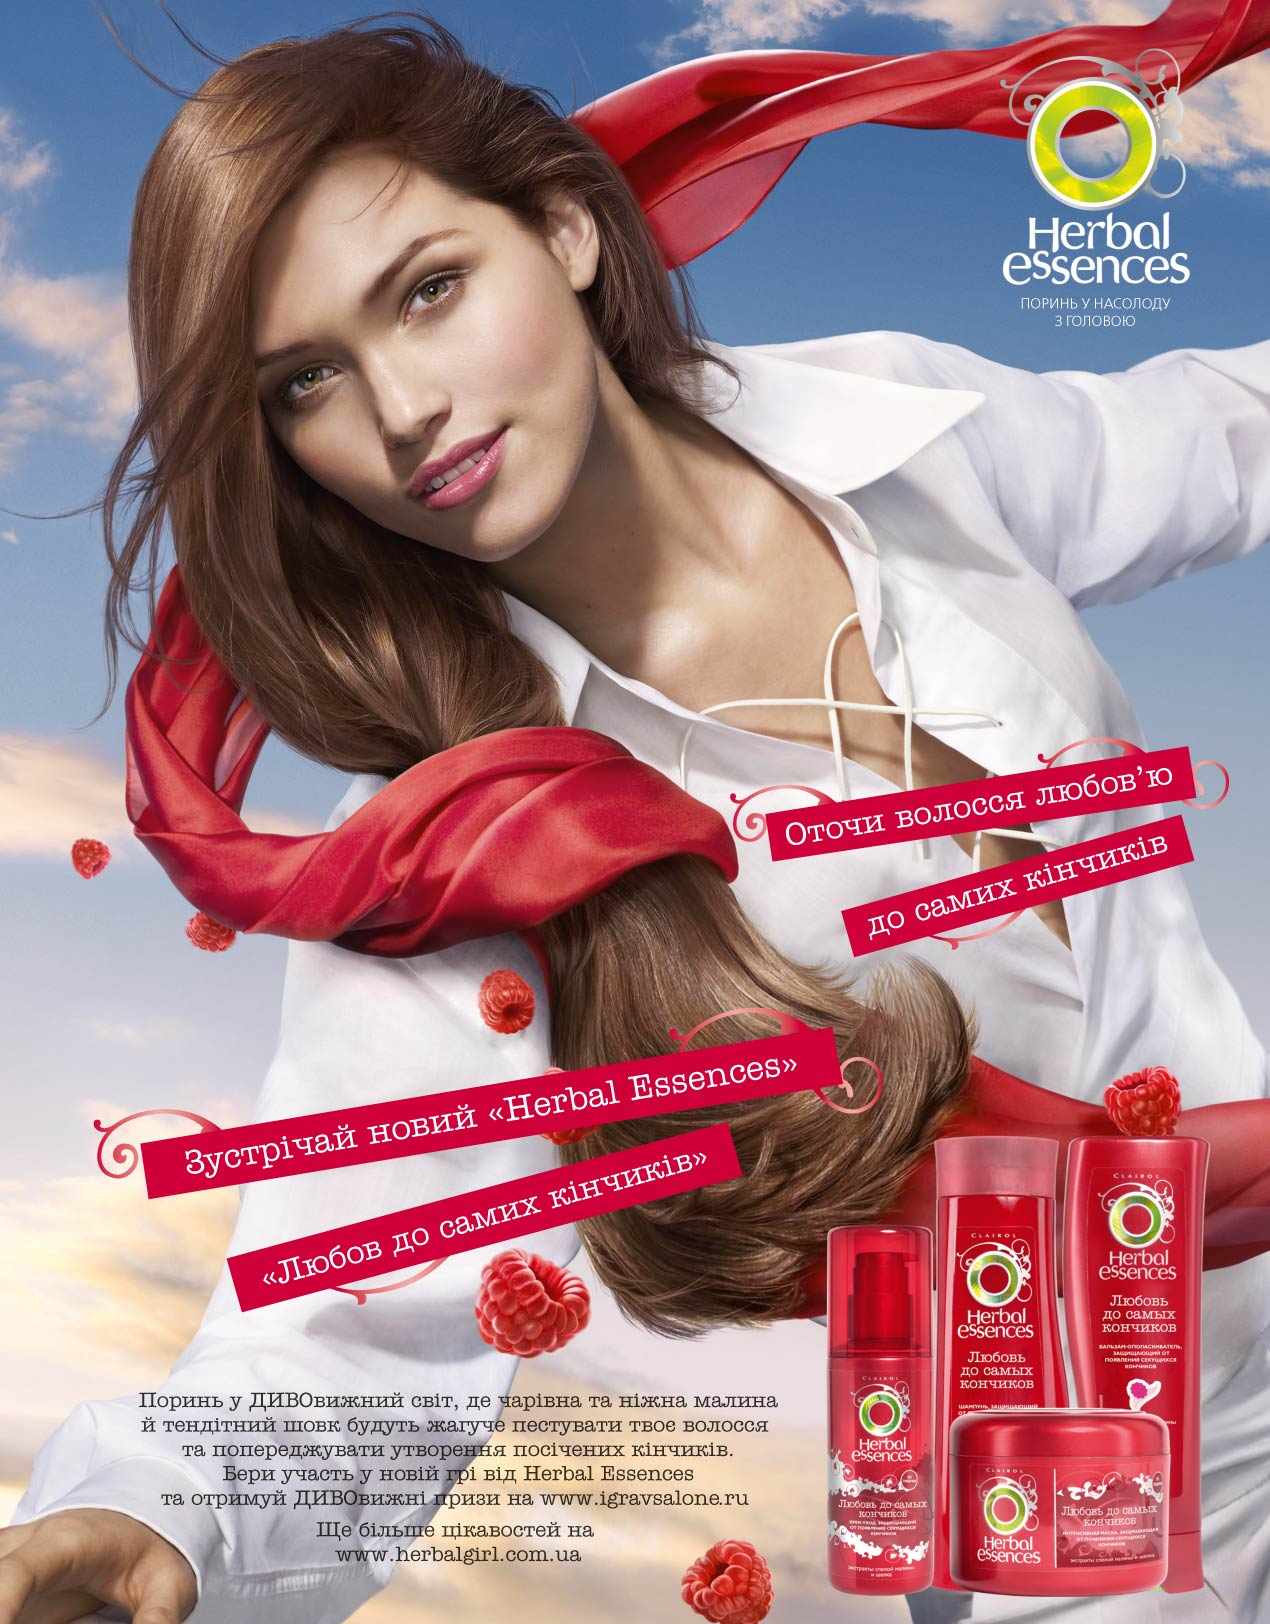 Herbal Essences magazine ad